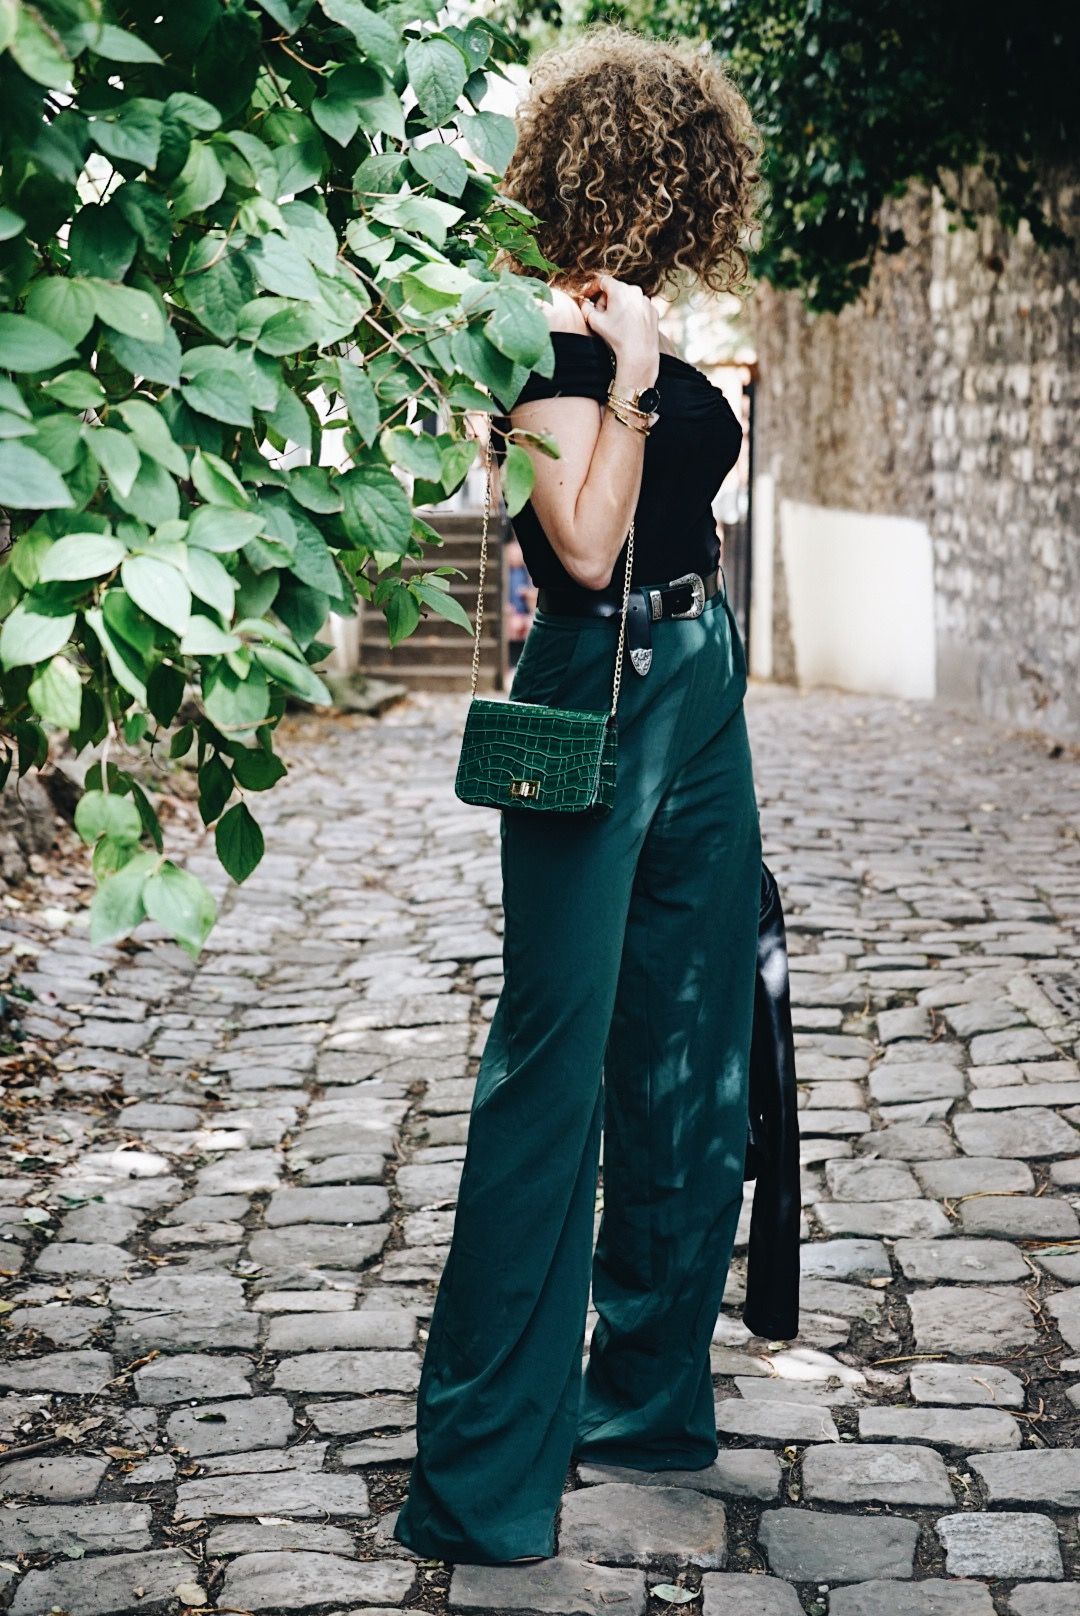 tendance-pantalon large-monsieurmada.me-magazine-lestendancesdelilou-Boris Deltell-Marie Amélie-sorryformyfrench-mode-fashion-blogueuse